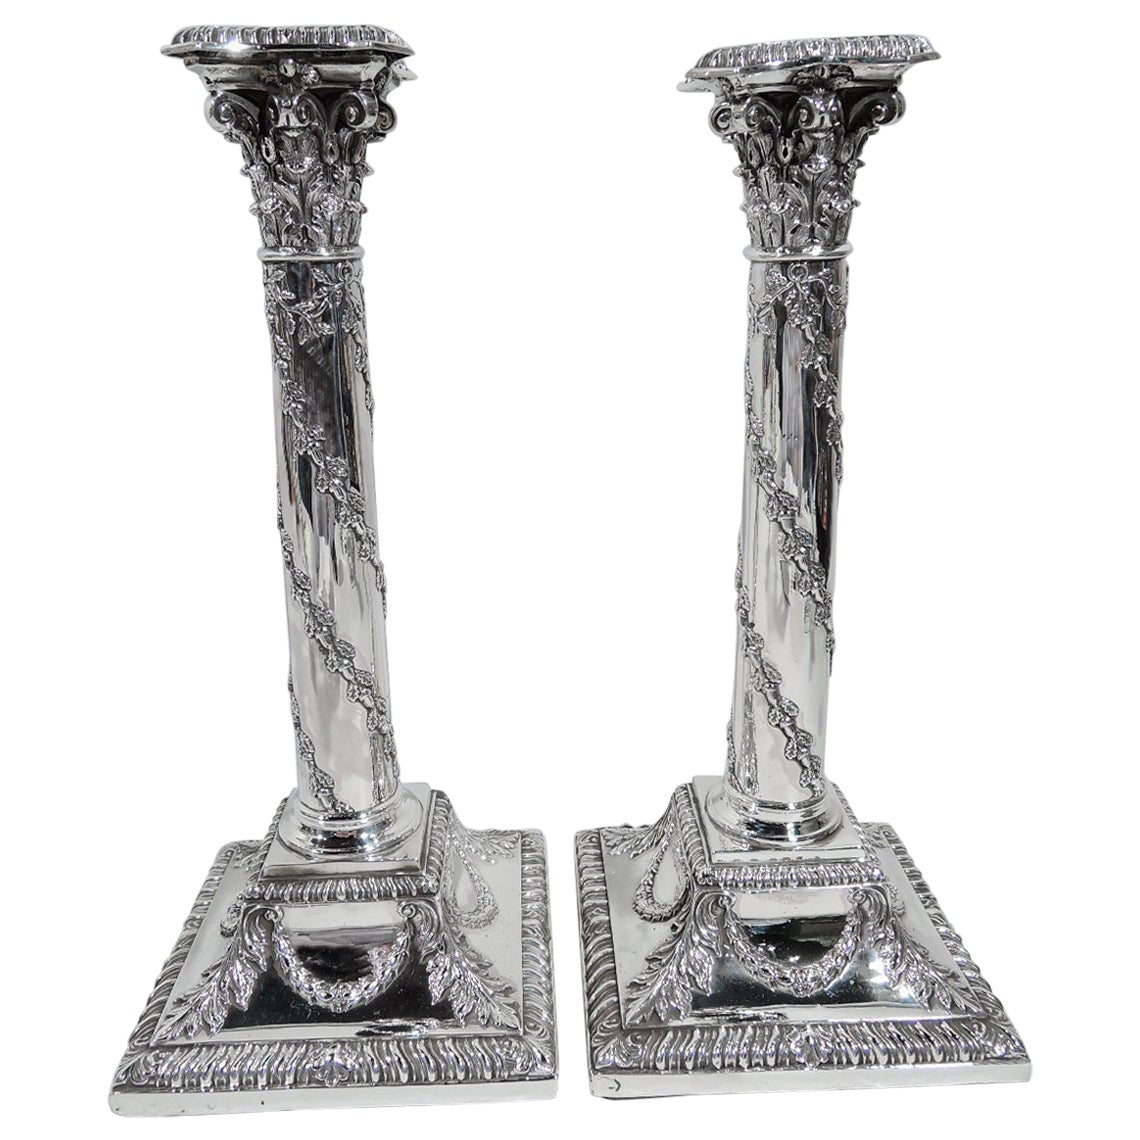 Pair of Antique Victorian Regency Sterling Silver Candlesticks